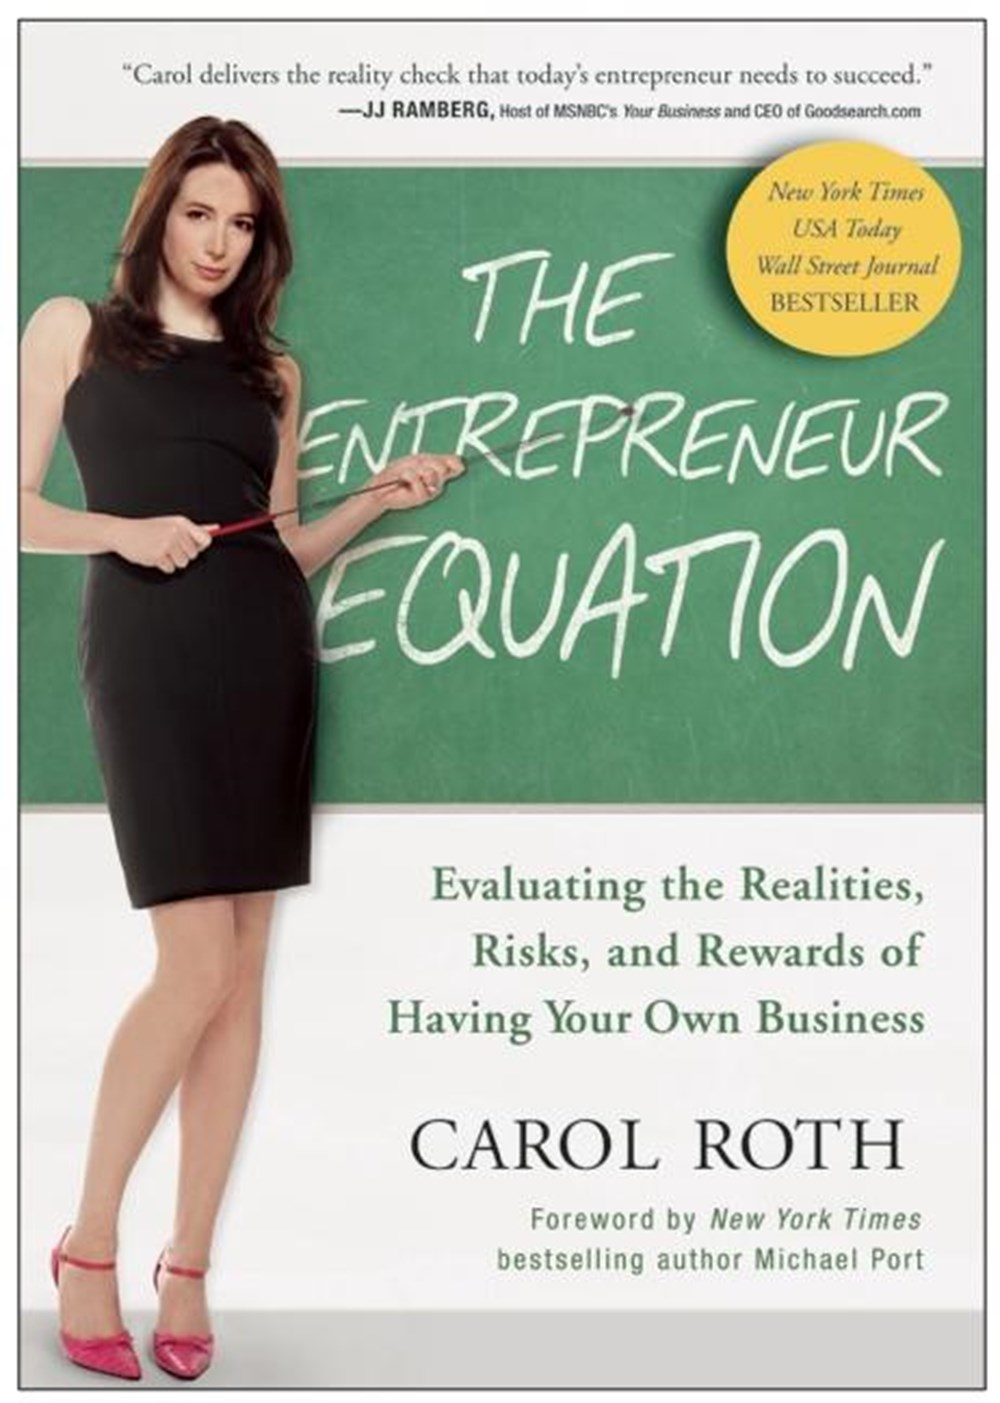 Entrepreneur Equation Evaluating the Realities, Risks, and Rewards of Having Your Own Business